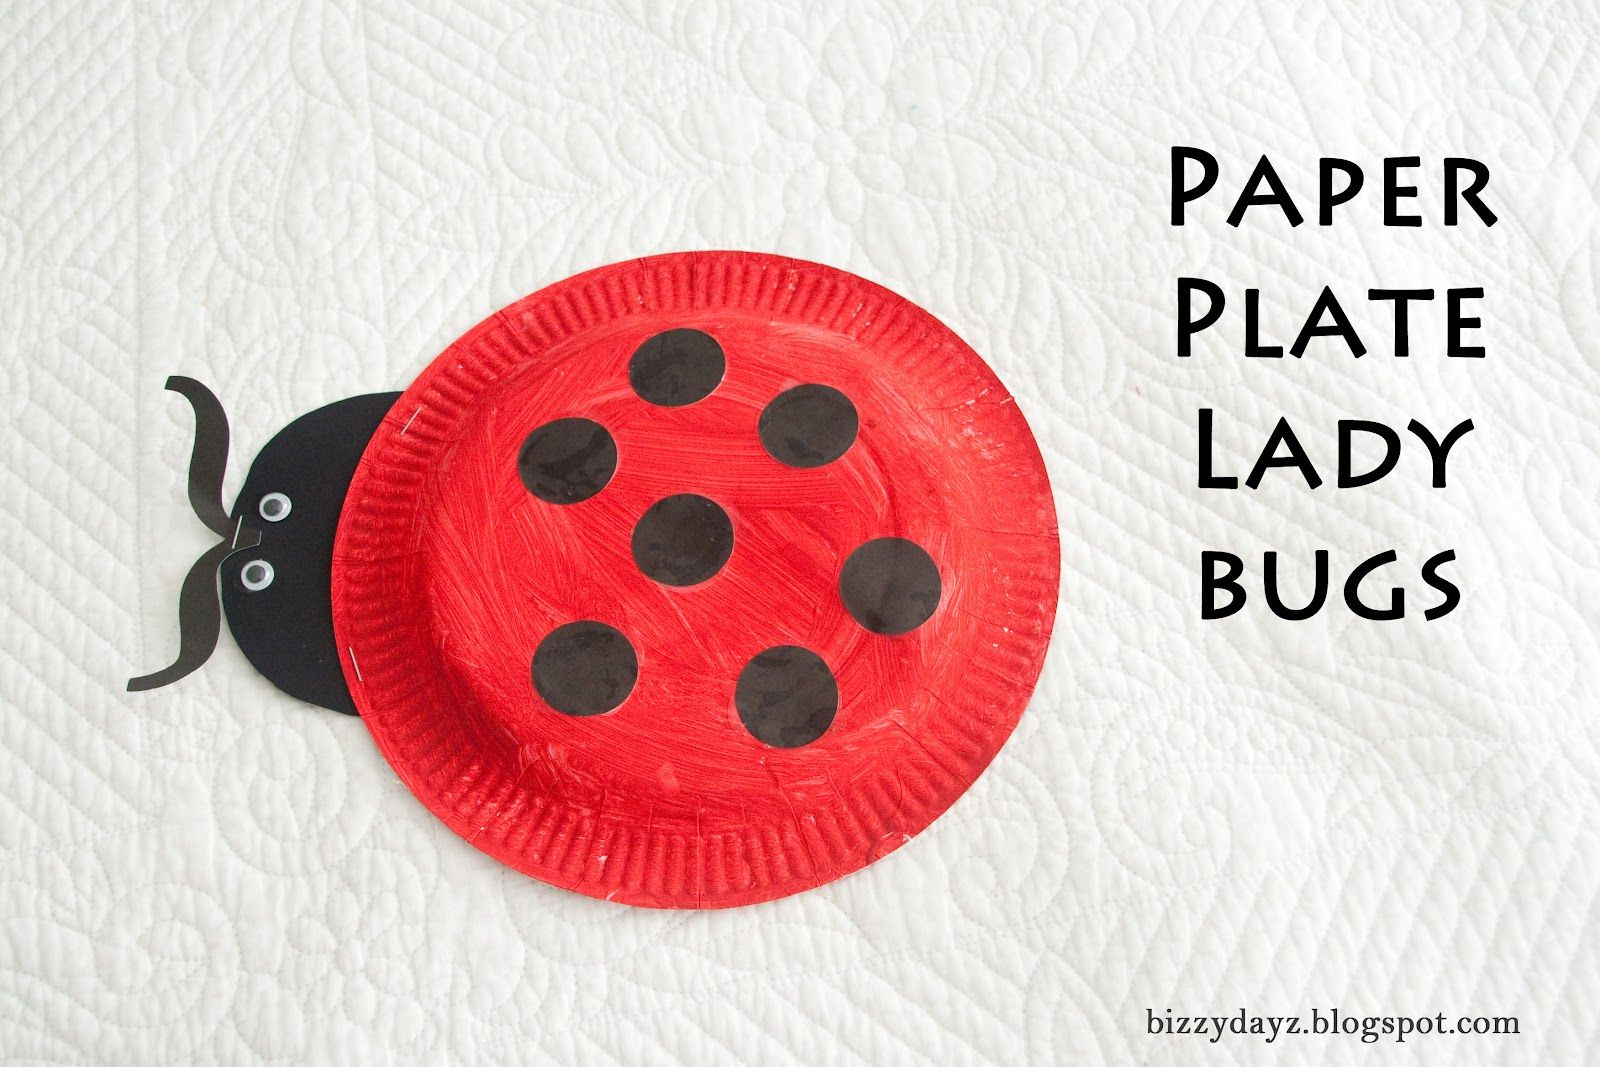 Bug Week Bizzydayz Paper Plate Lady Bugs